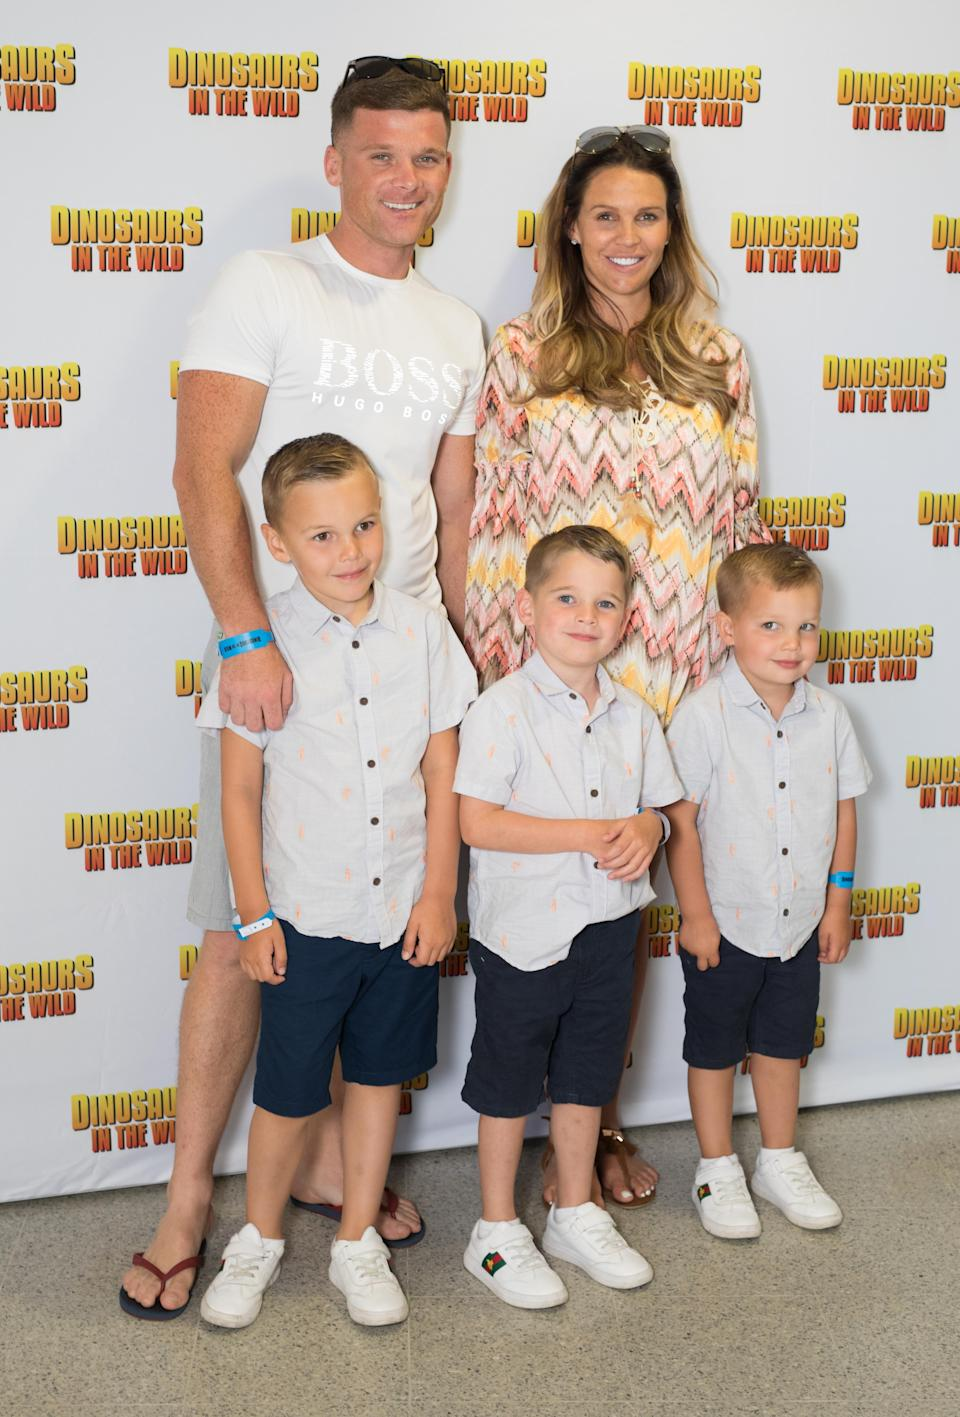 Danielle Lloyd and Michael O'Neill with (left to right) Archie, 7, Harry, 6, and George, 4, attend the launch of Dinosaurs In The Wild at the Birmingham NEC, (PA)